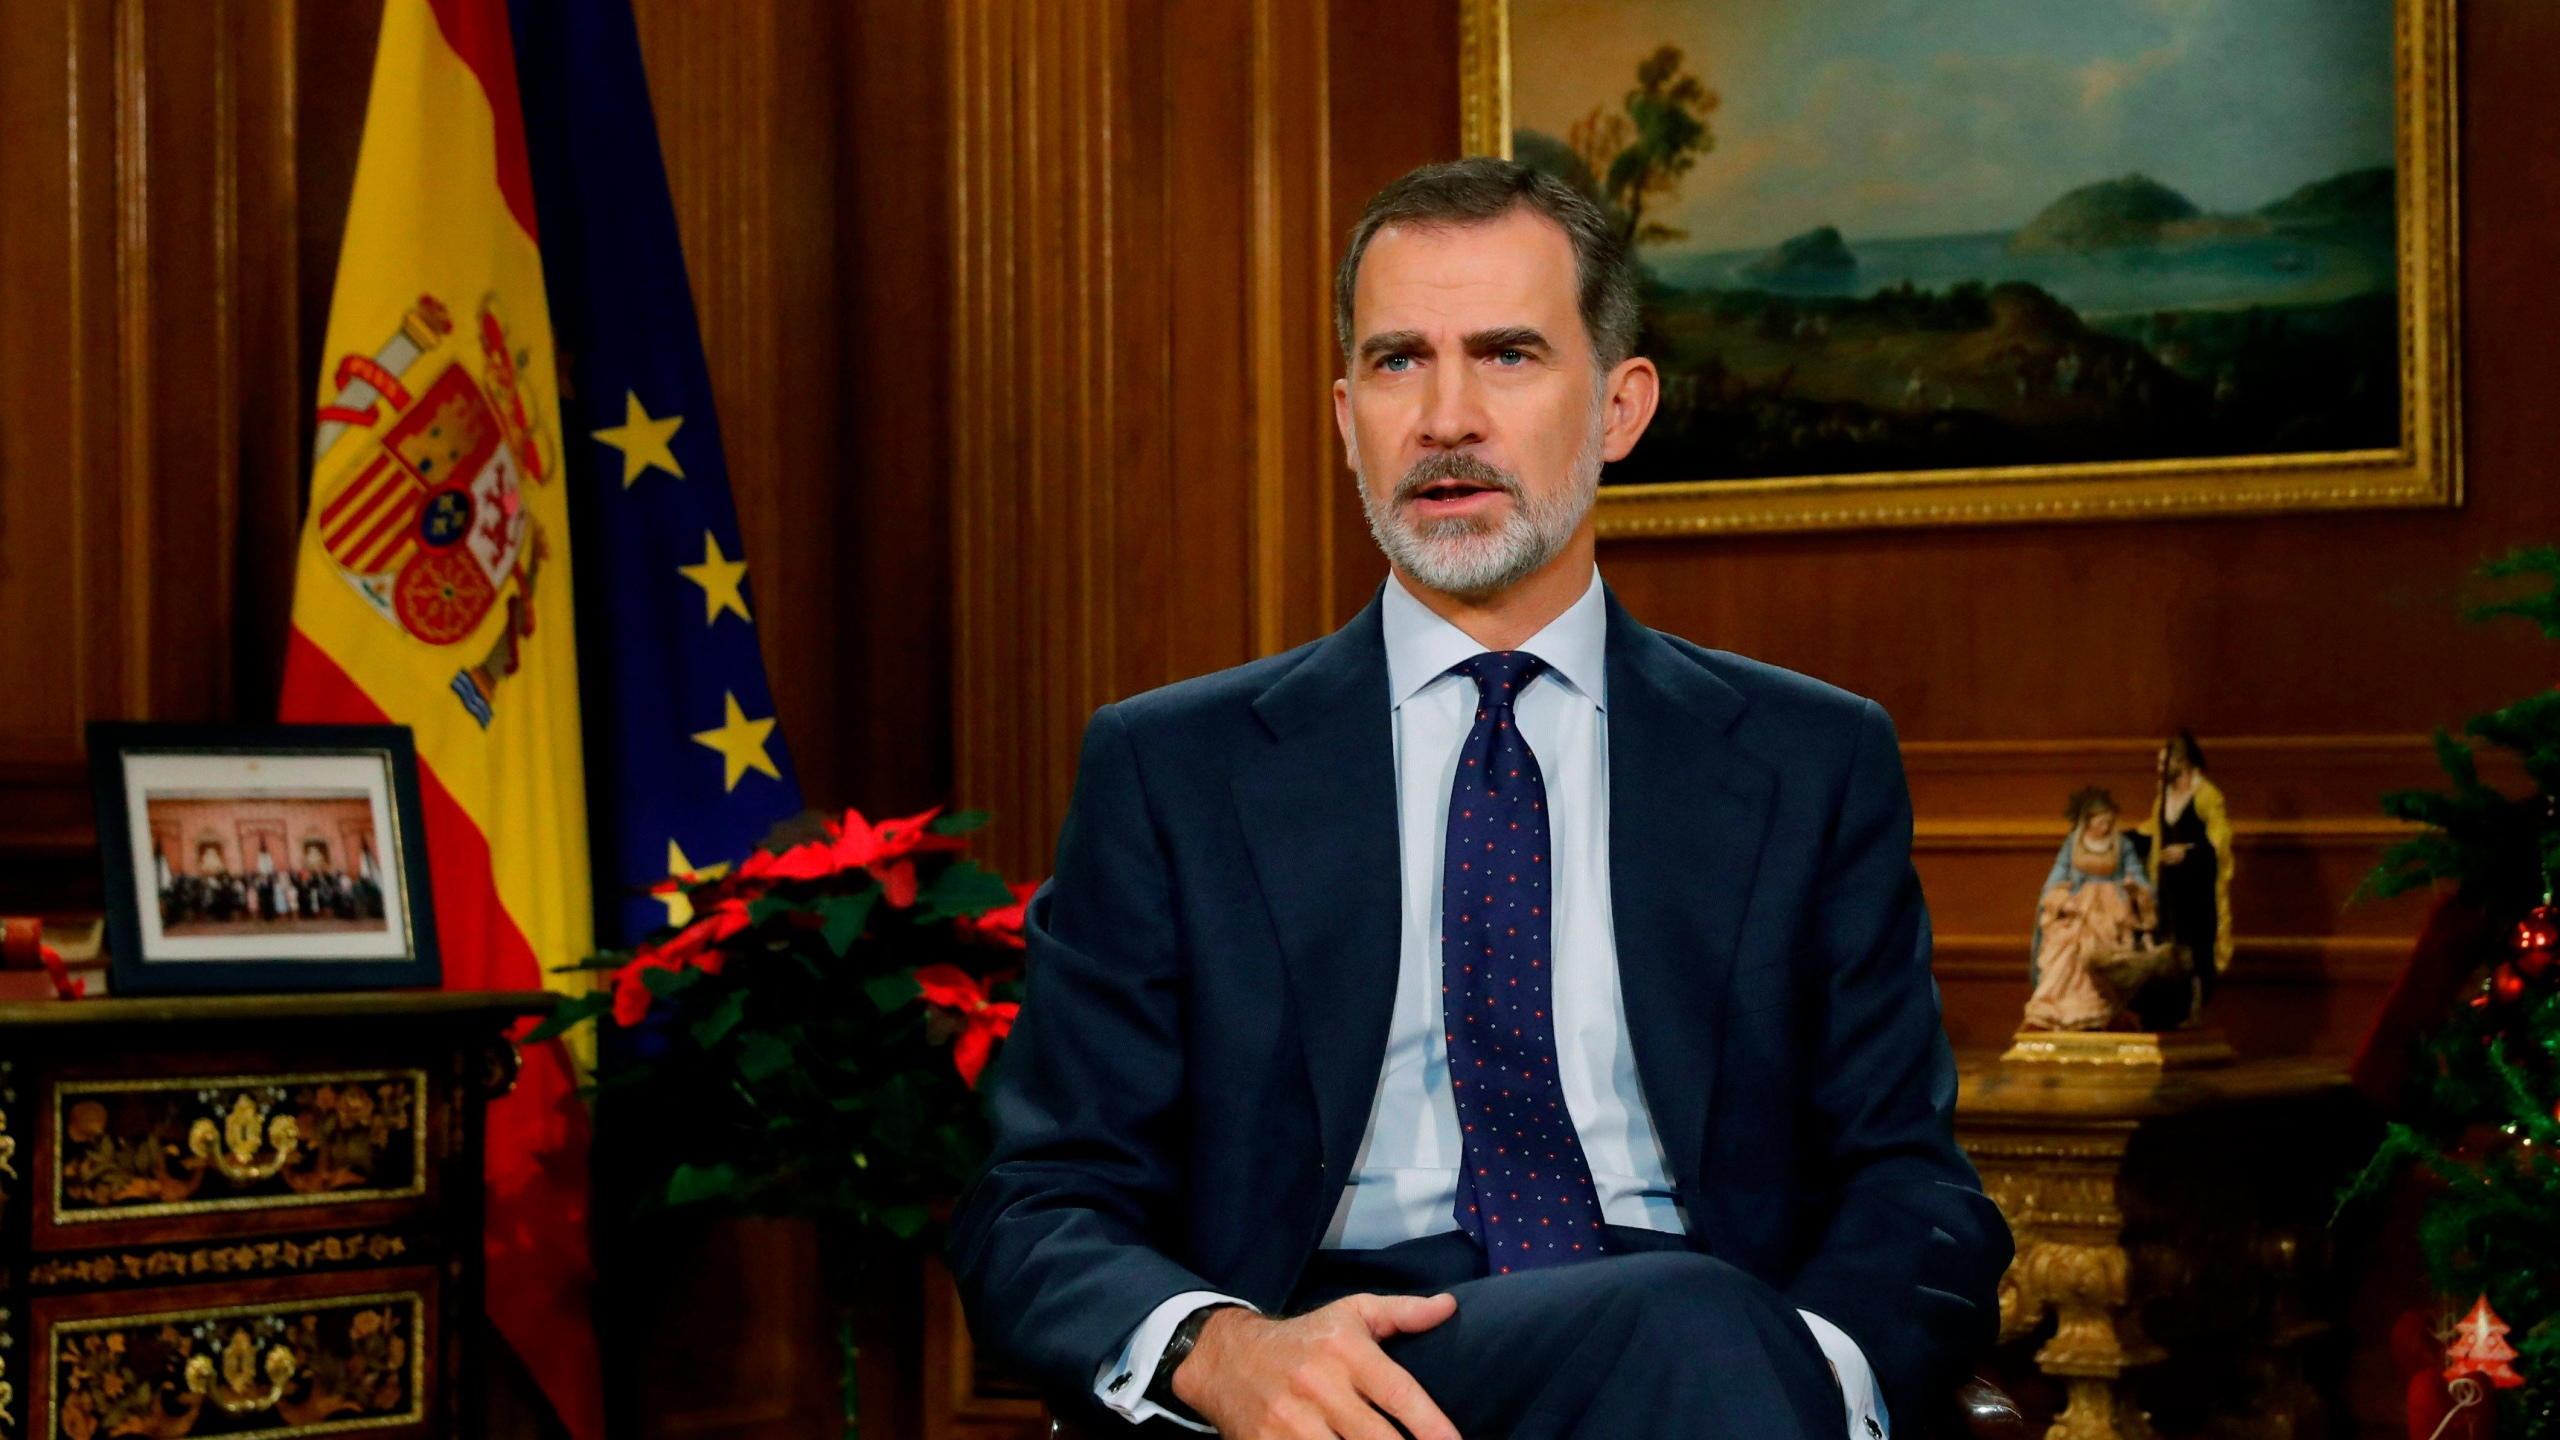 Christmas Eve Crashes In Tennessee Dec 24 2020 Spain's King defends Constitution in Christmas Eve address – WATE